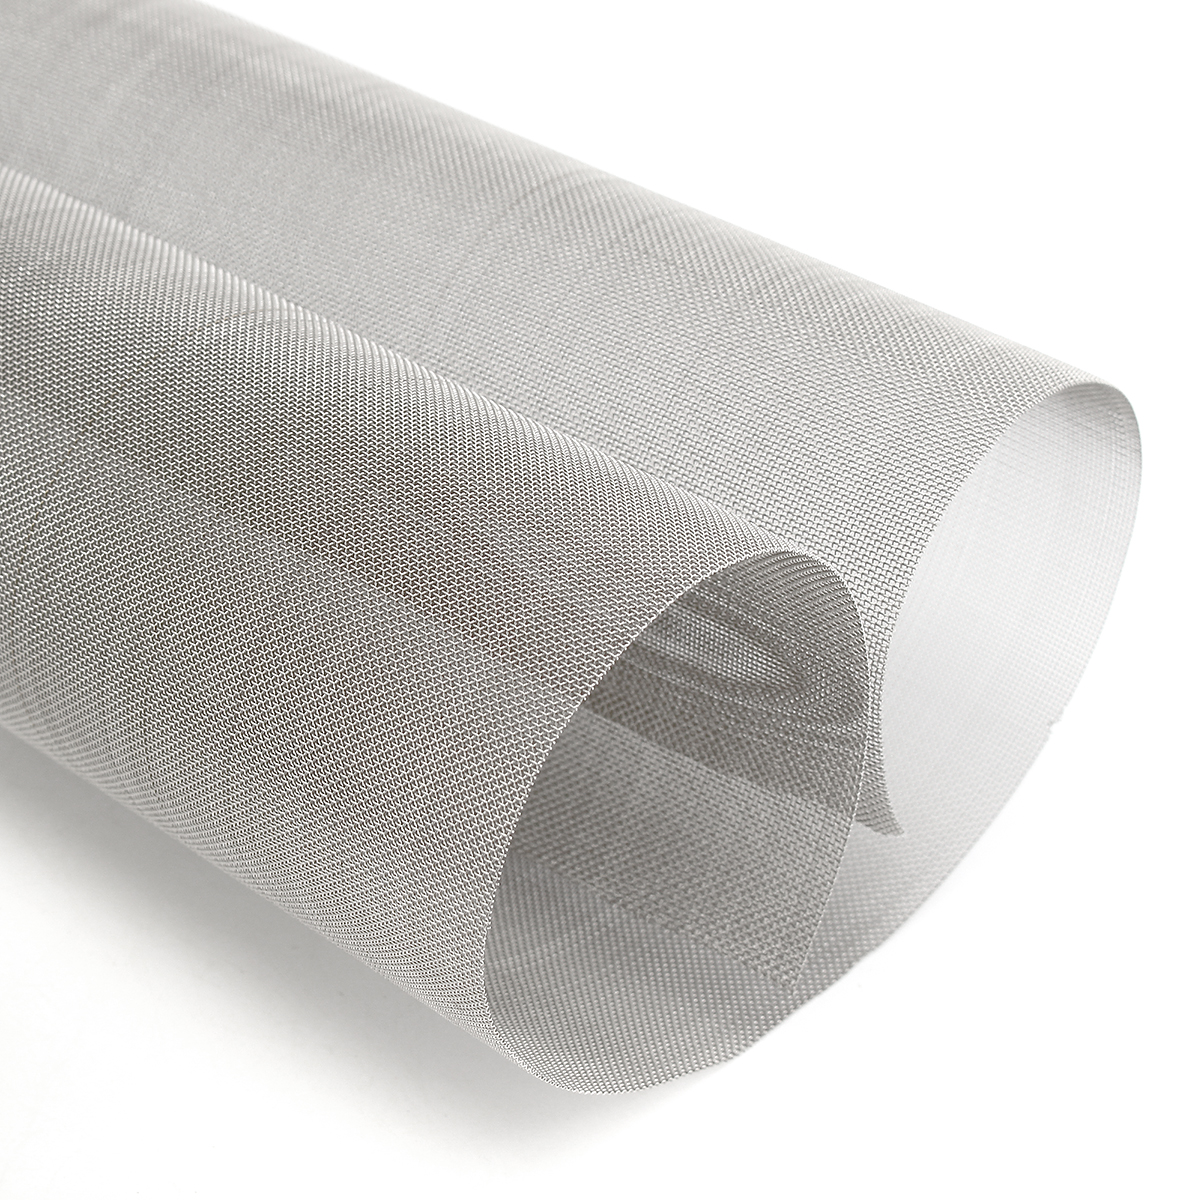 50x50cm Woven Wire 304 Stainless Steel Filtration Grill Sheet Filter 30 Mesh